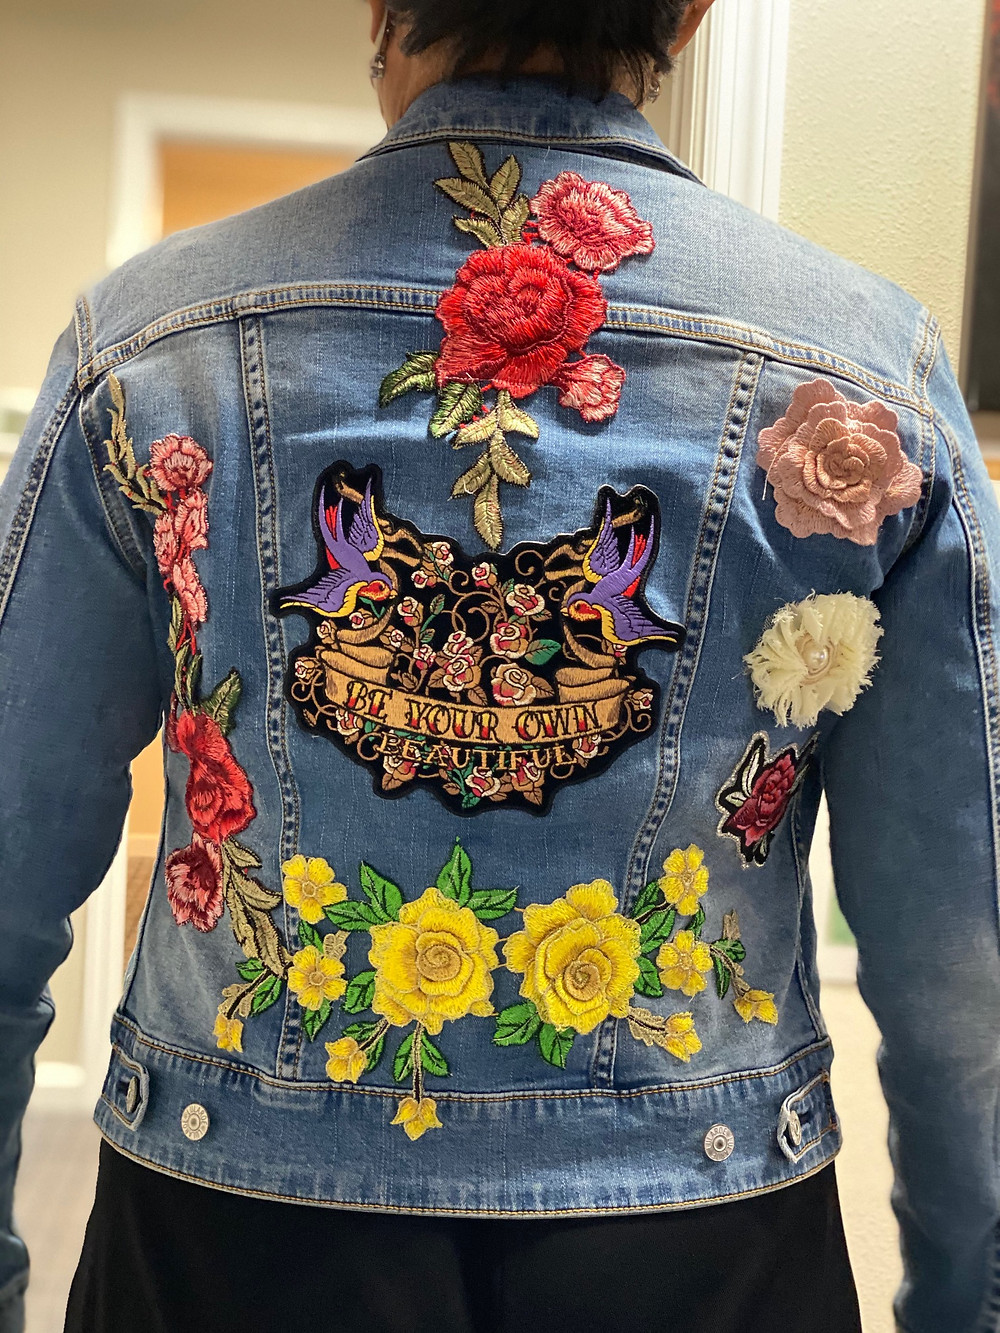 Embroidary Design on a Jacket